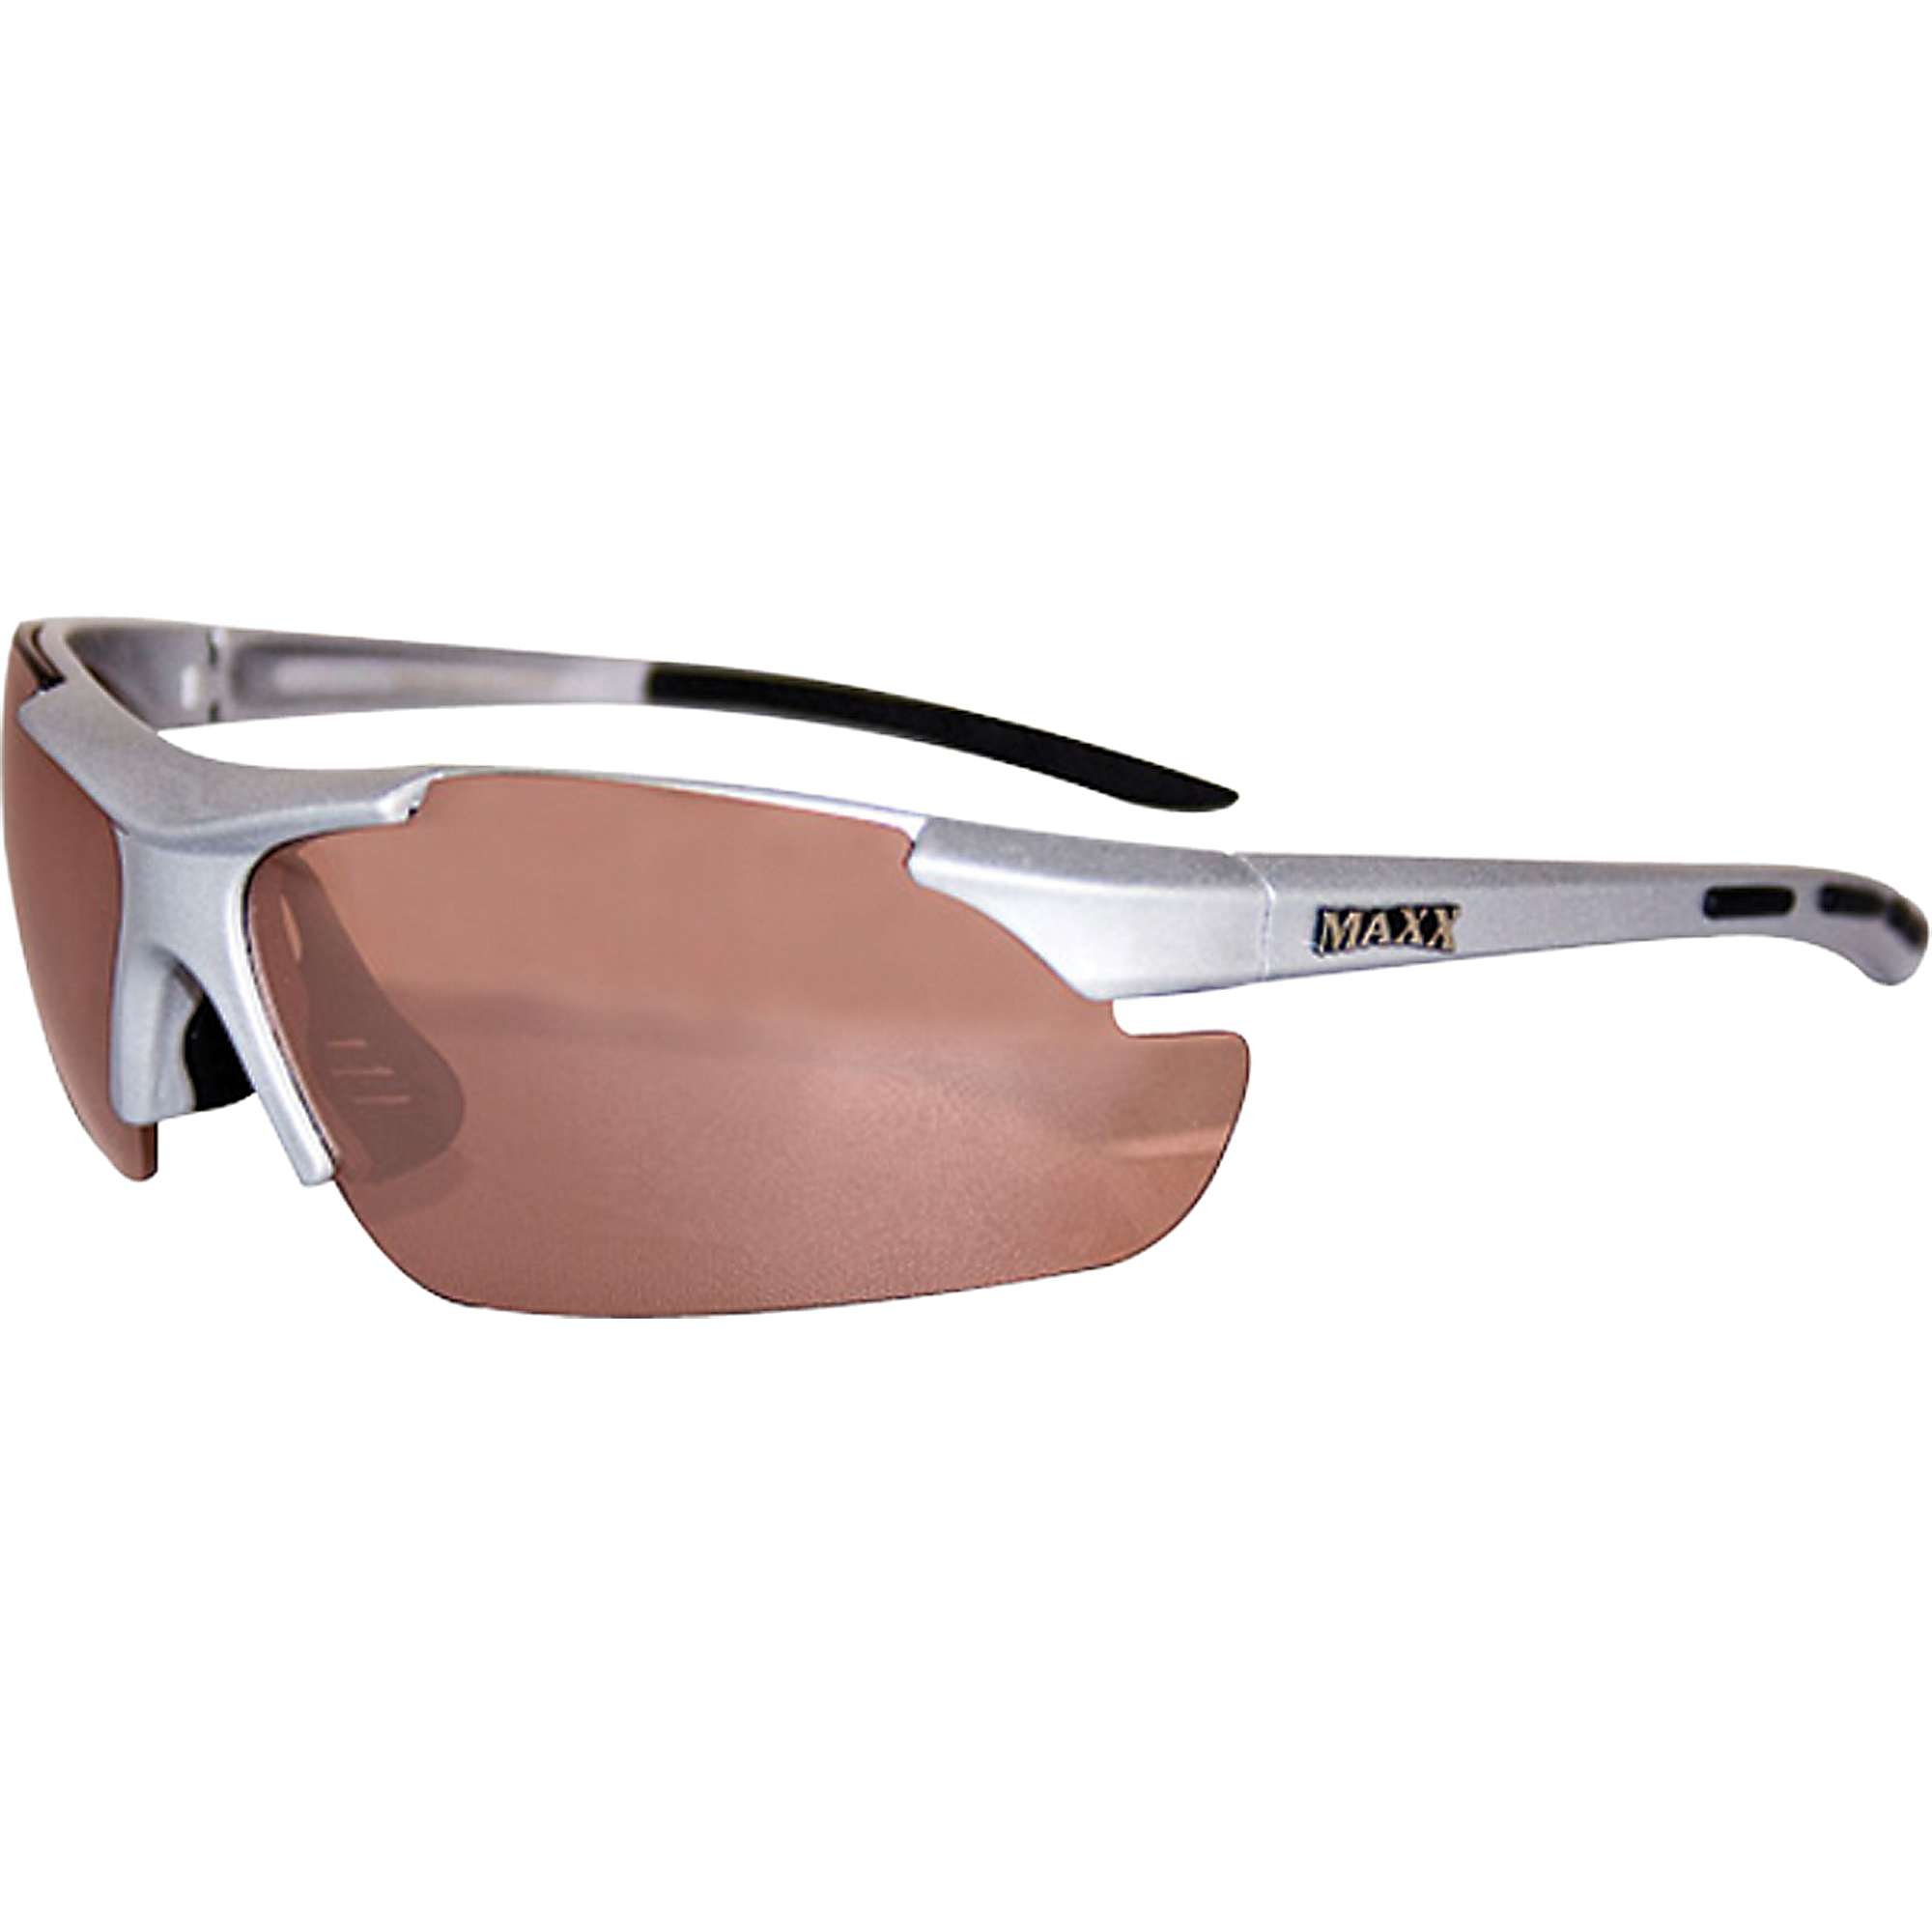 Maxx Hd Raven Sunglasses